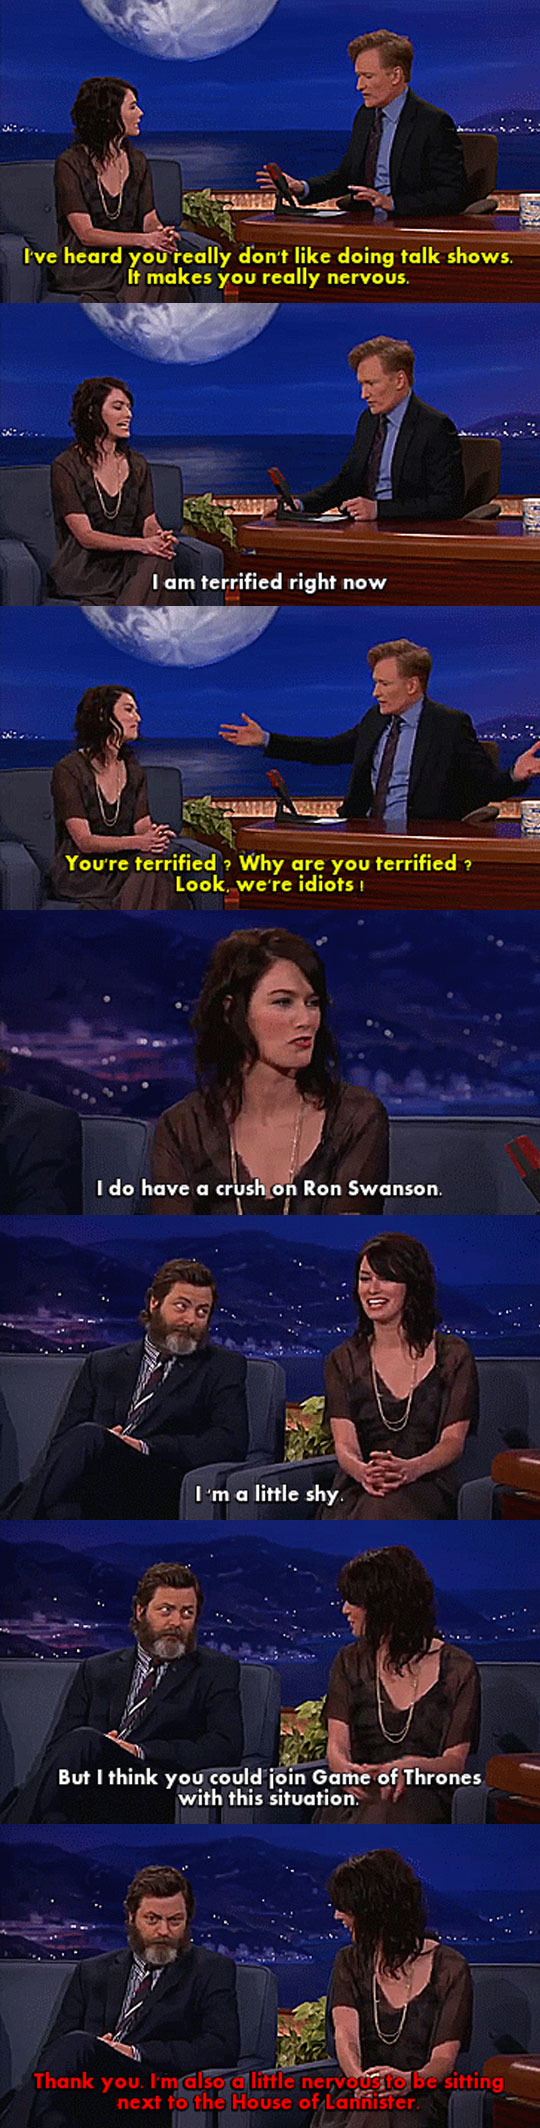 funny-picture-interview-Ron-Swanson-Lannister